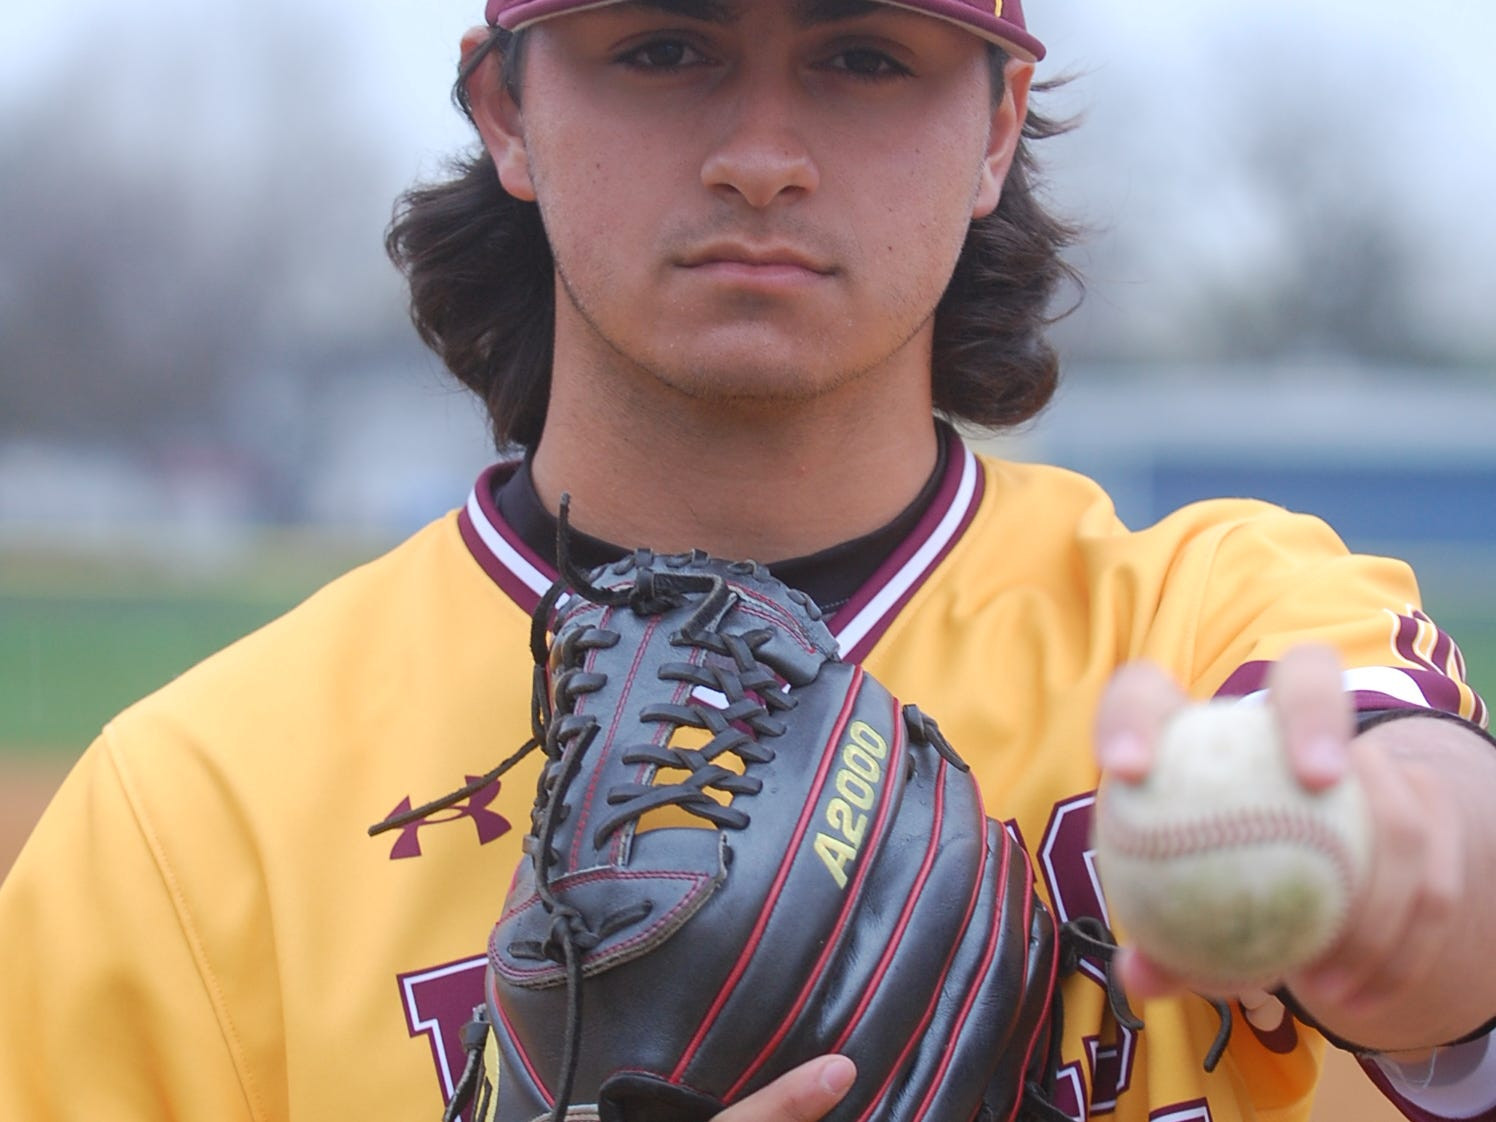 Dante Scafidi, a senior at Gloucester Catholic, has overcome two surgeries that washed away his last two seasons of high school baseball.